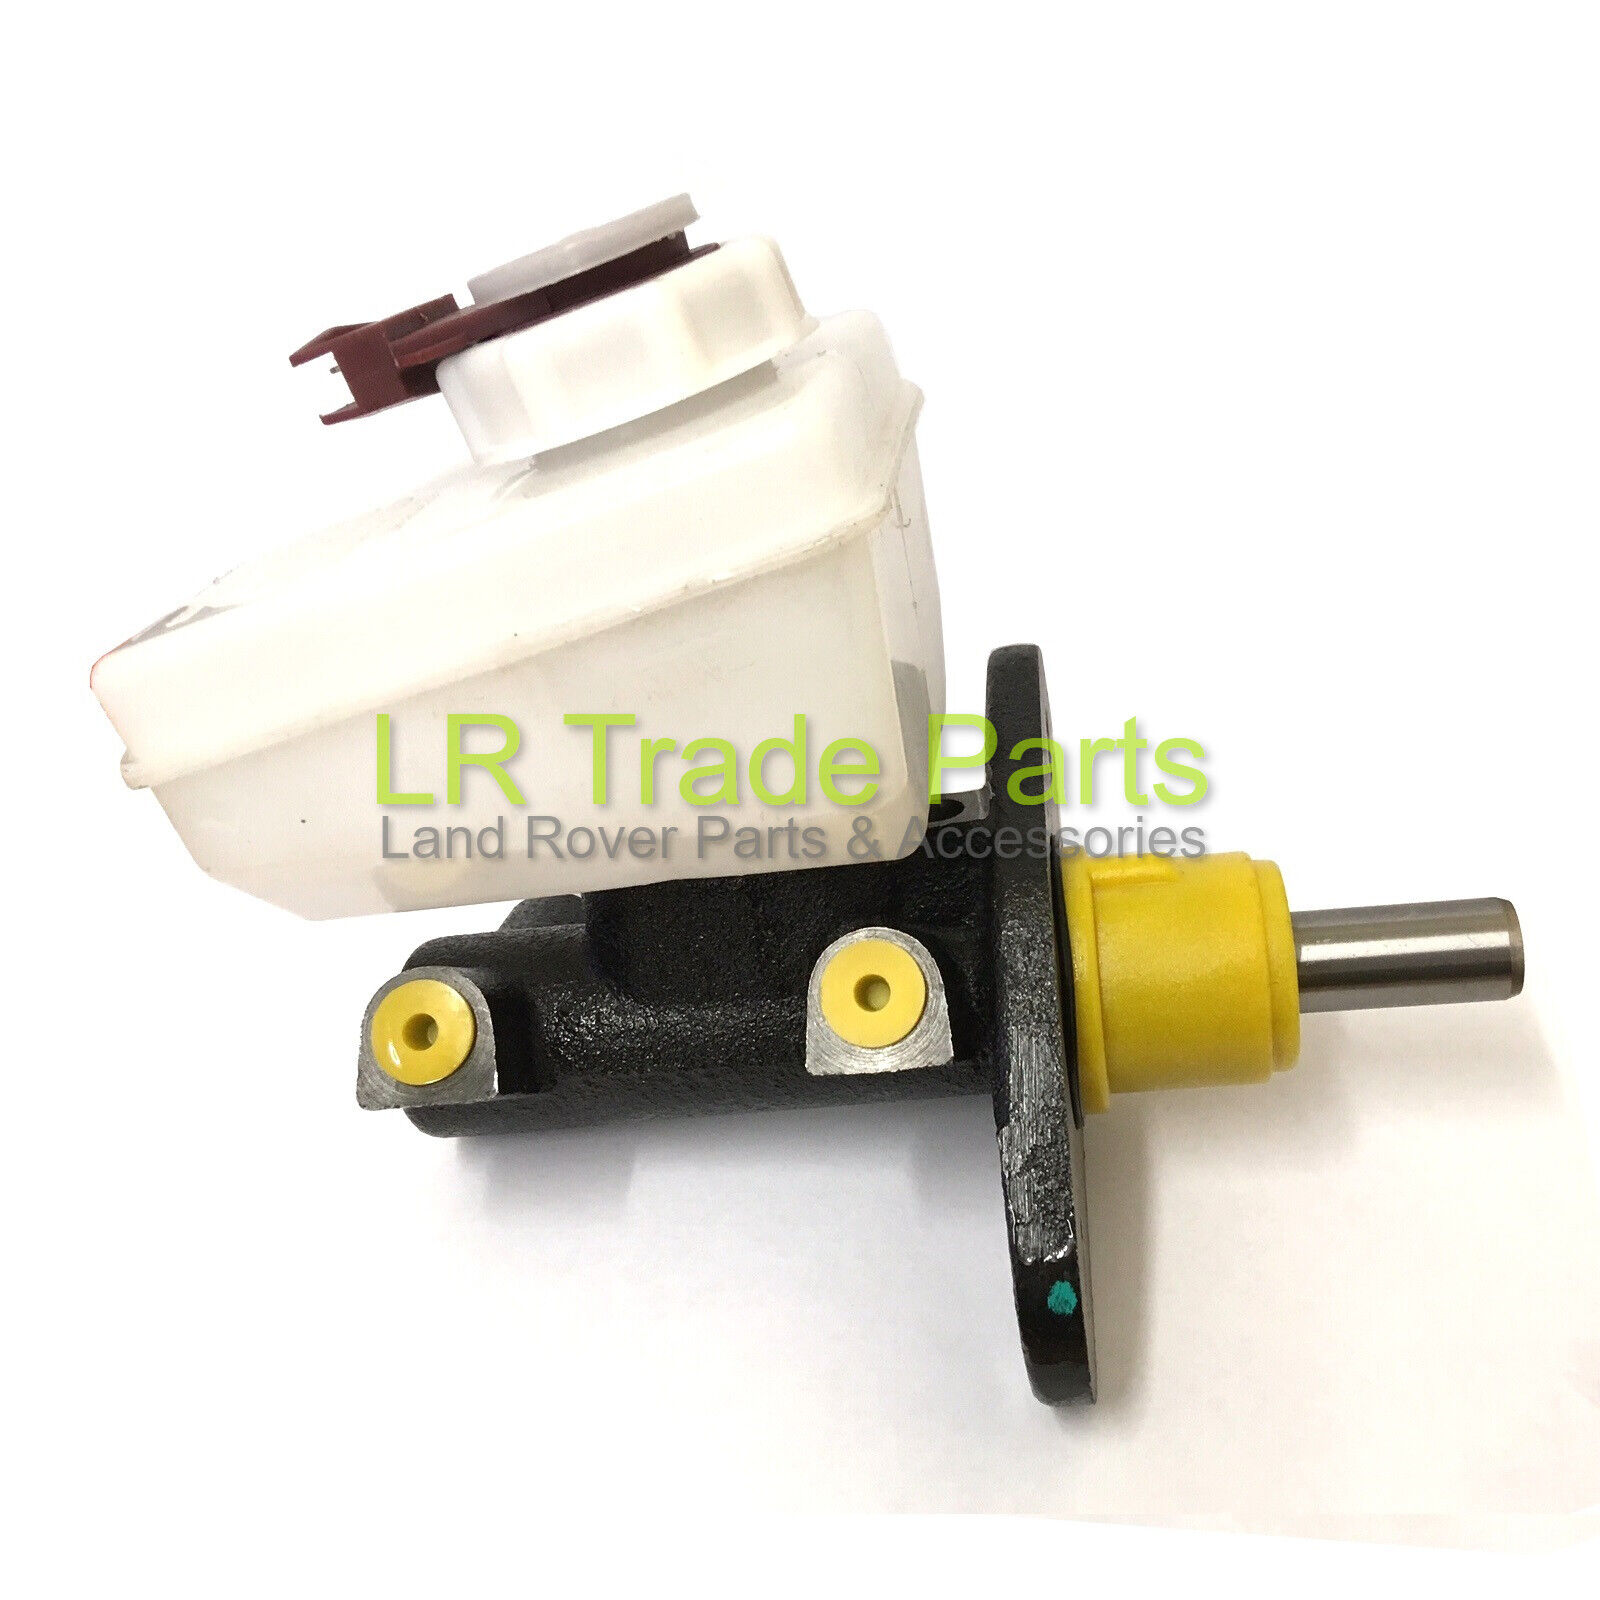 LAND ROVER DISCOVERY 1 BRAKE MASTER CYLINDER ASSEMBLY STC1285 PART